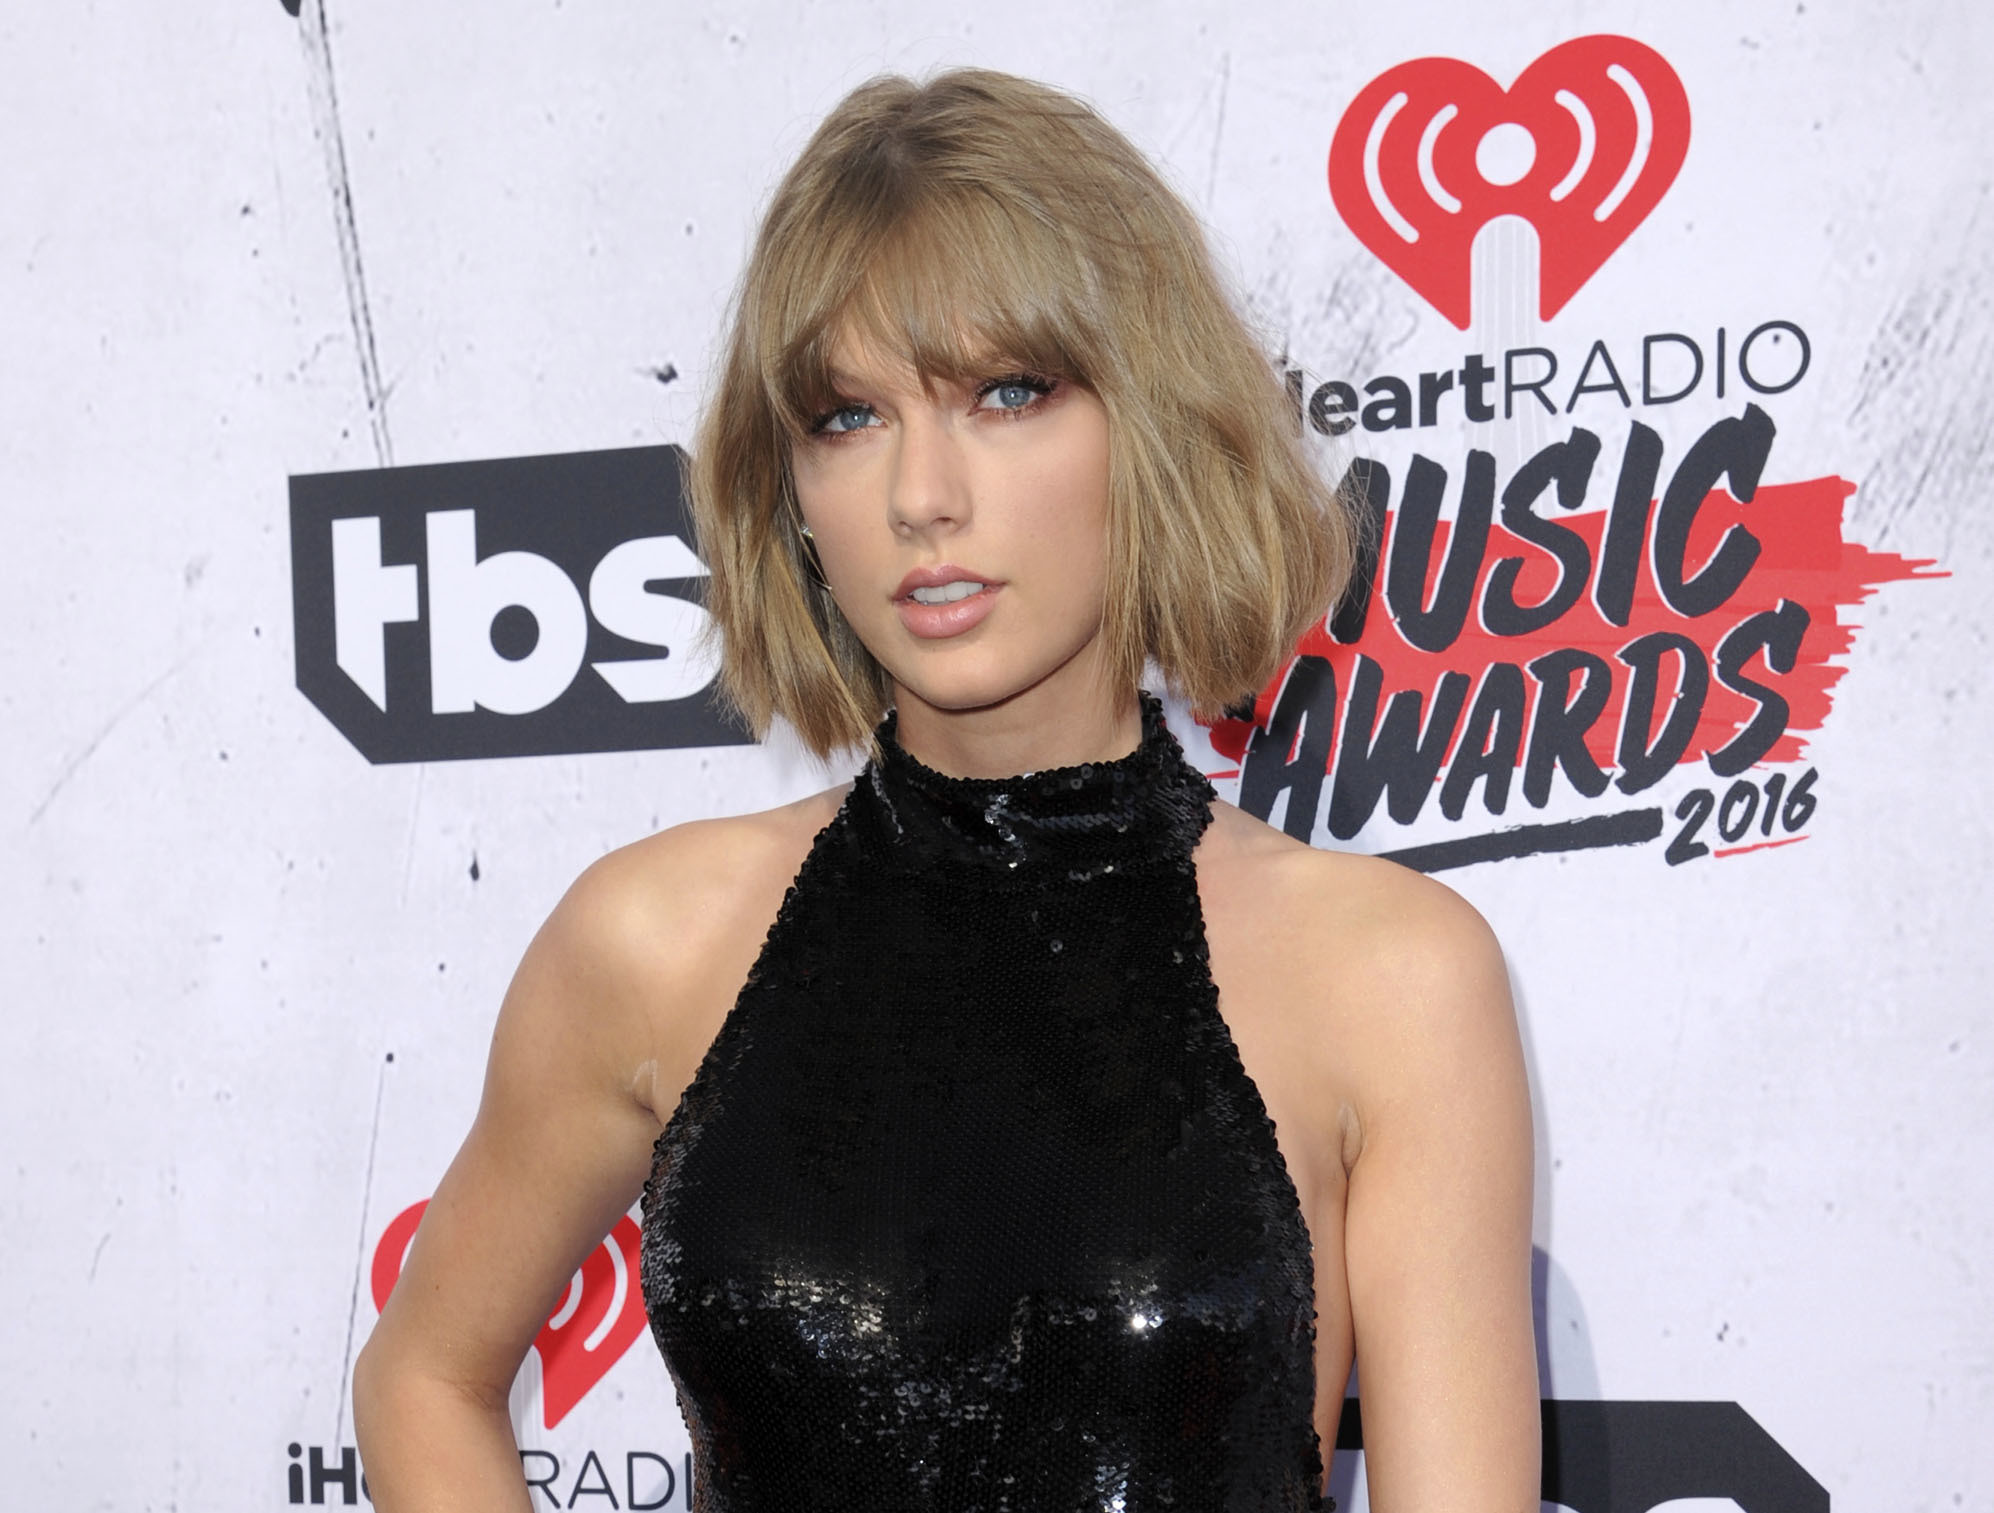 Taylor swift doesnt sugar coat testimony in radio dj groping case taylor swift doesnt sugar coat testimony in radio dj groping case chicago tribune m4hsunfo